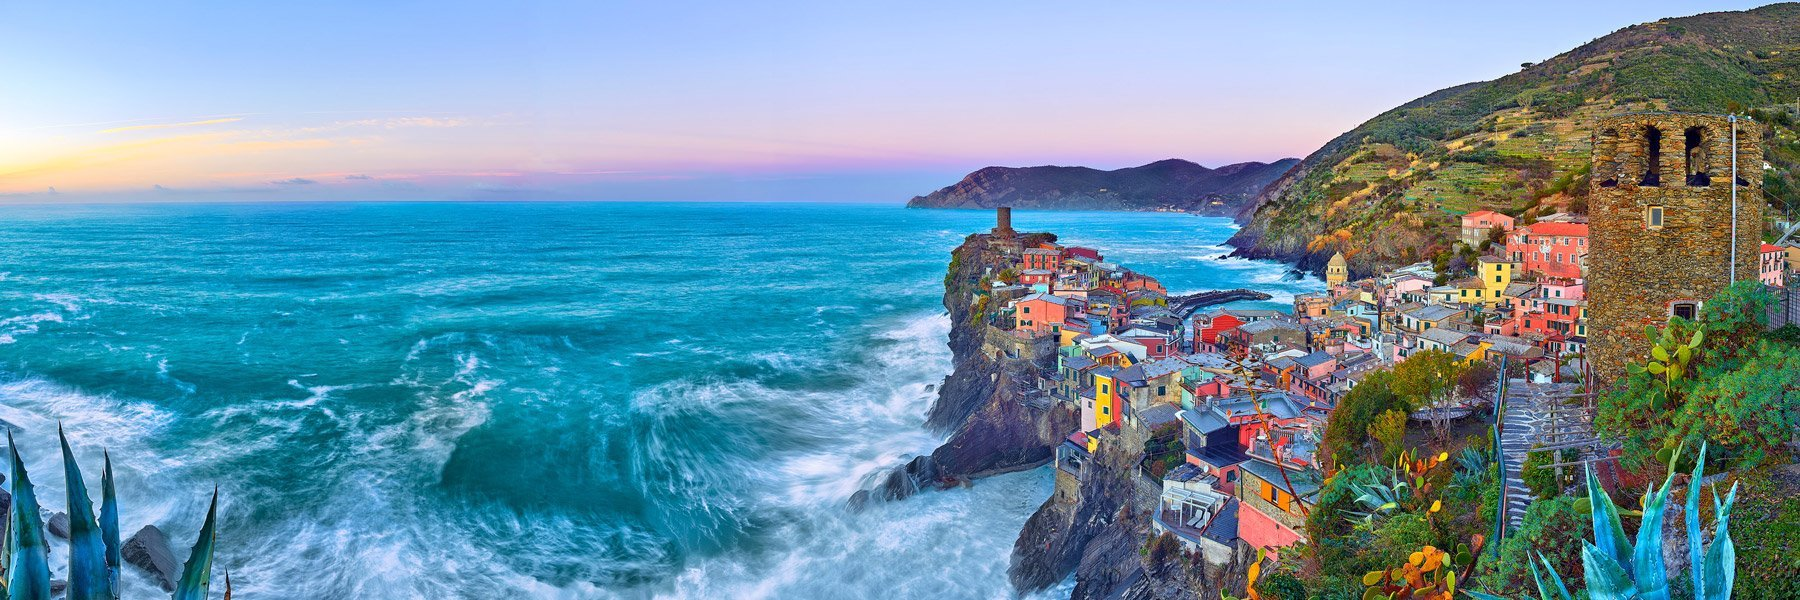 The picturesque town of Vernazza at sunset, Cinque Terra, Italy.